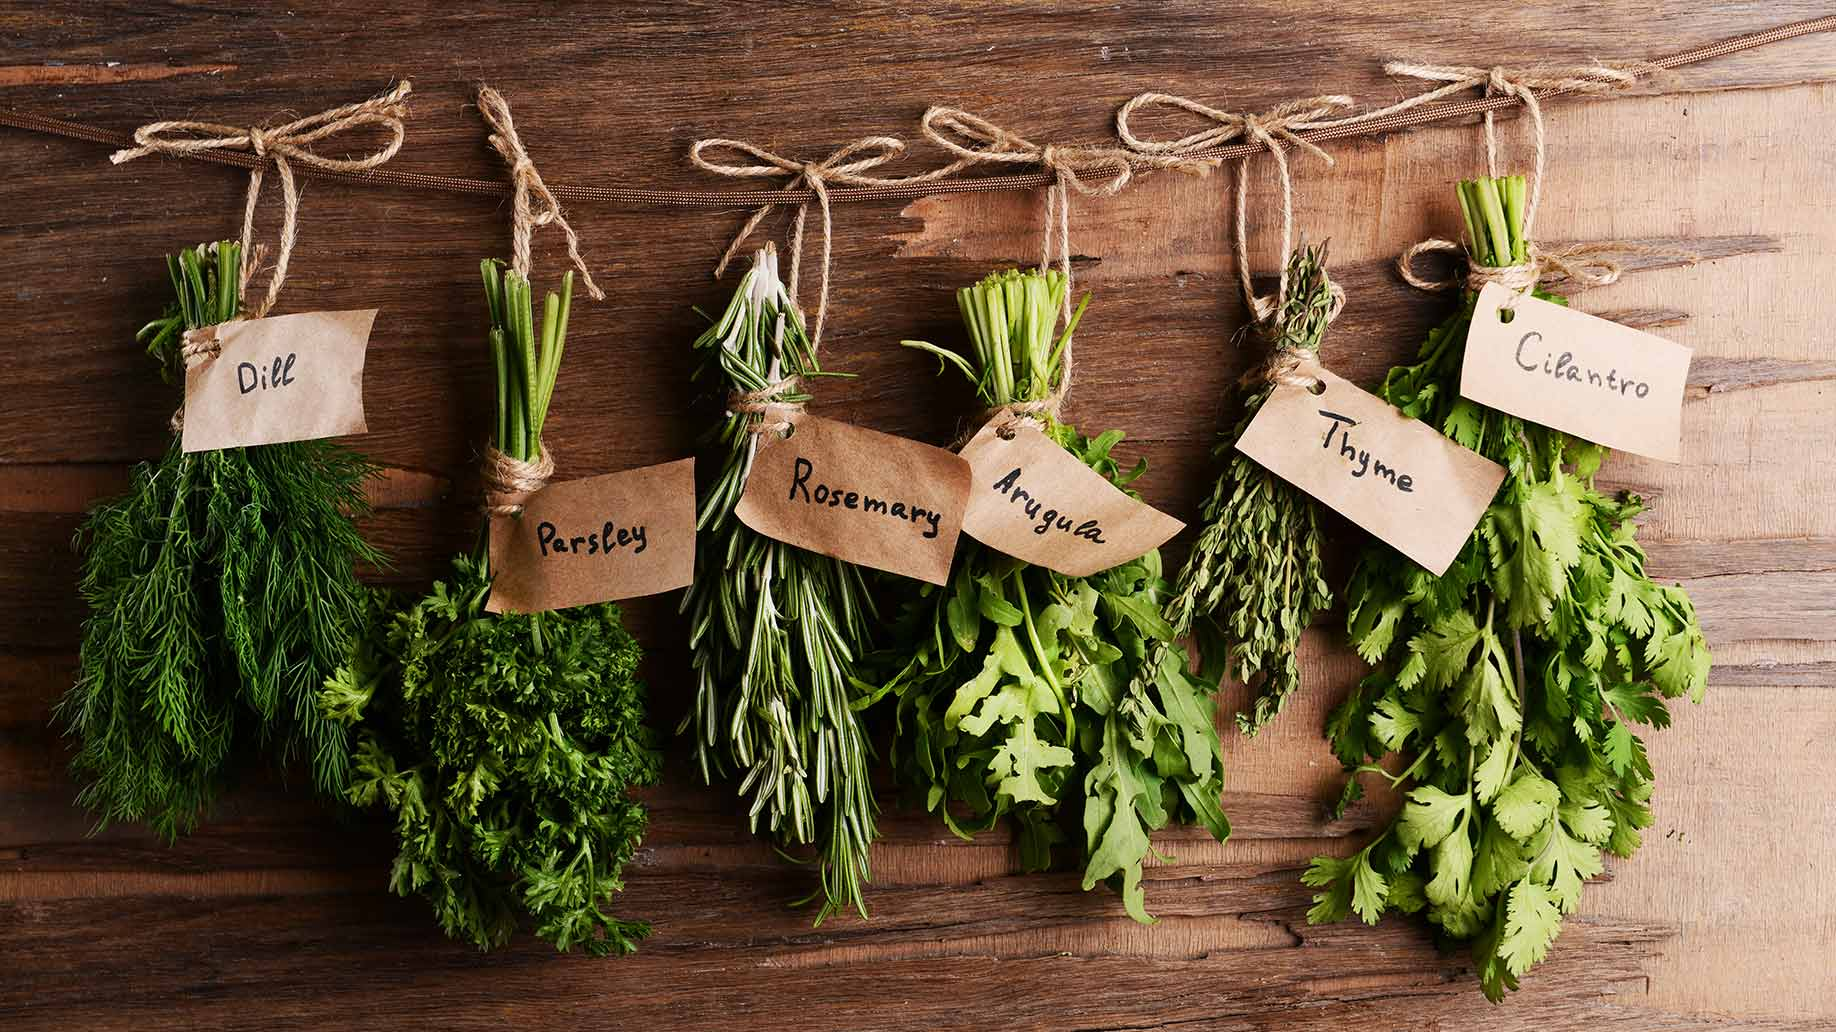 Powerful Plants: Medicinal Plants For Your Home or Garden